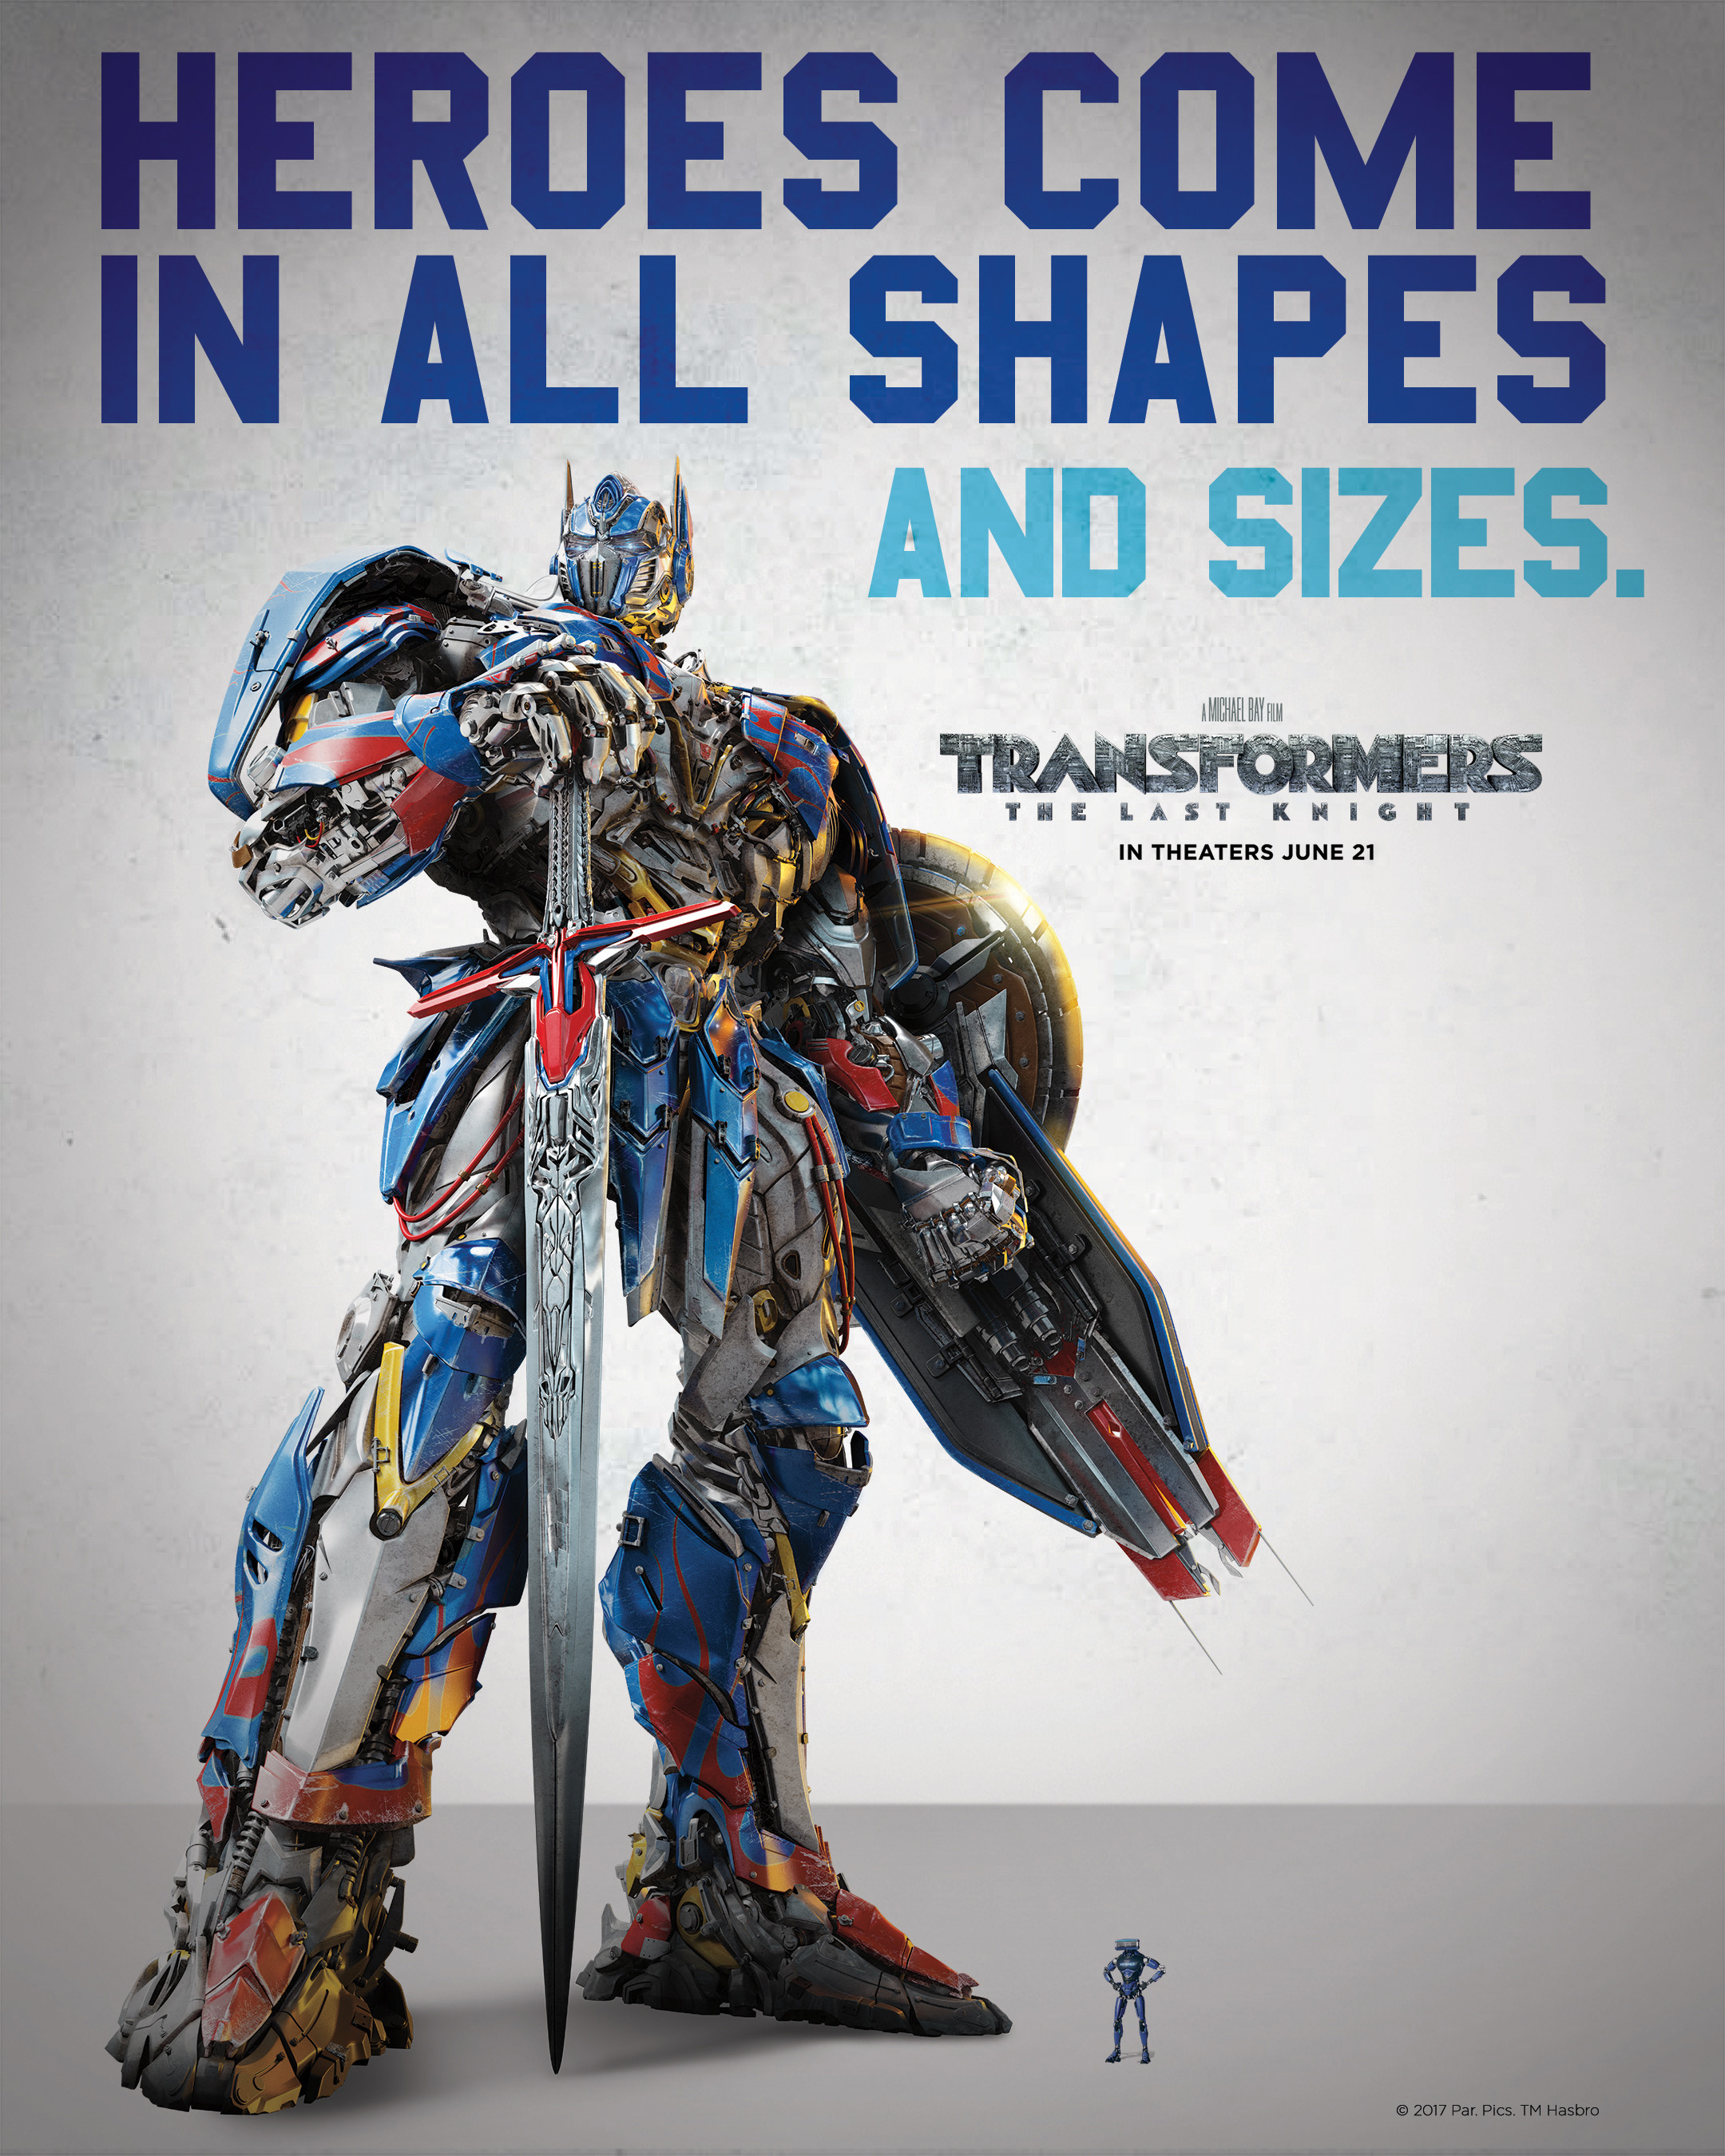 The Schick® Hydro® partnership with the new movie Transformers: The Last Knight, directed by Michael Bay, demonstrates how the brand brings to life the transformative powers of a great shave. The partnership highlights Schick Hydro's Hydrobot, the brand's iconic hero razor designed like no other, through a new TV commercial and limited-edition, collectible razors.